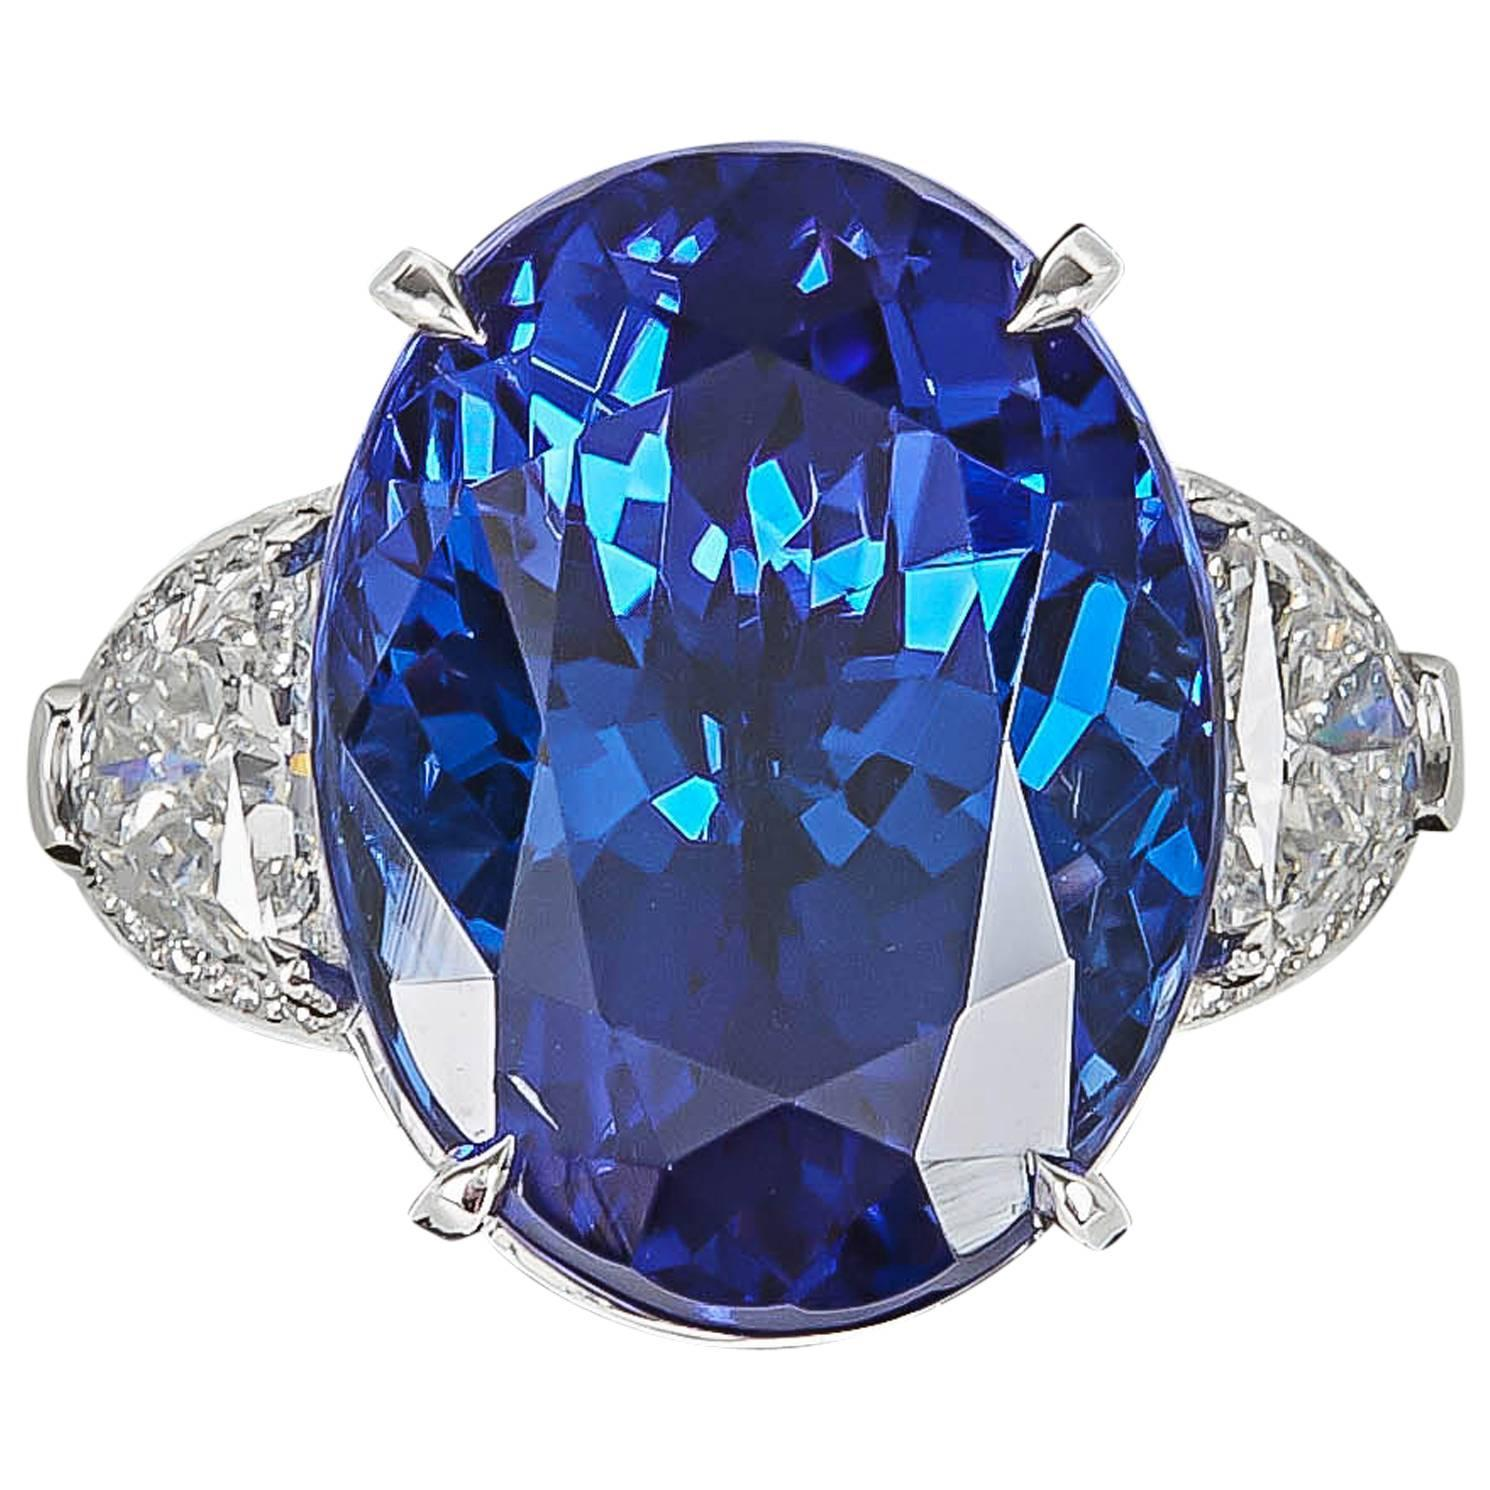 oppenheimer diamond article index s style sotheby sothebys full cnn farnese ring to blue royal rings sell